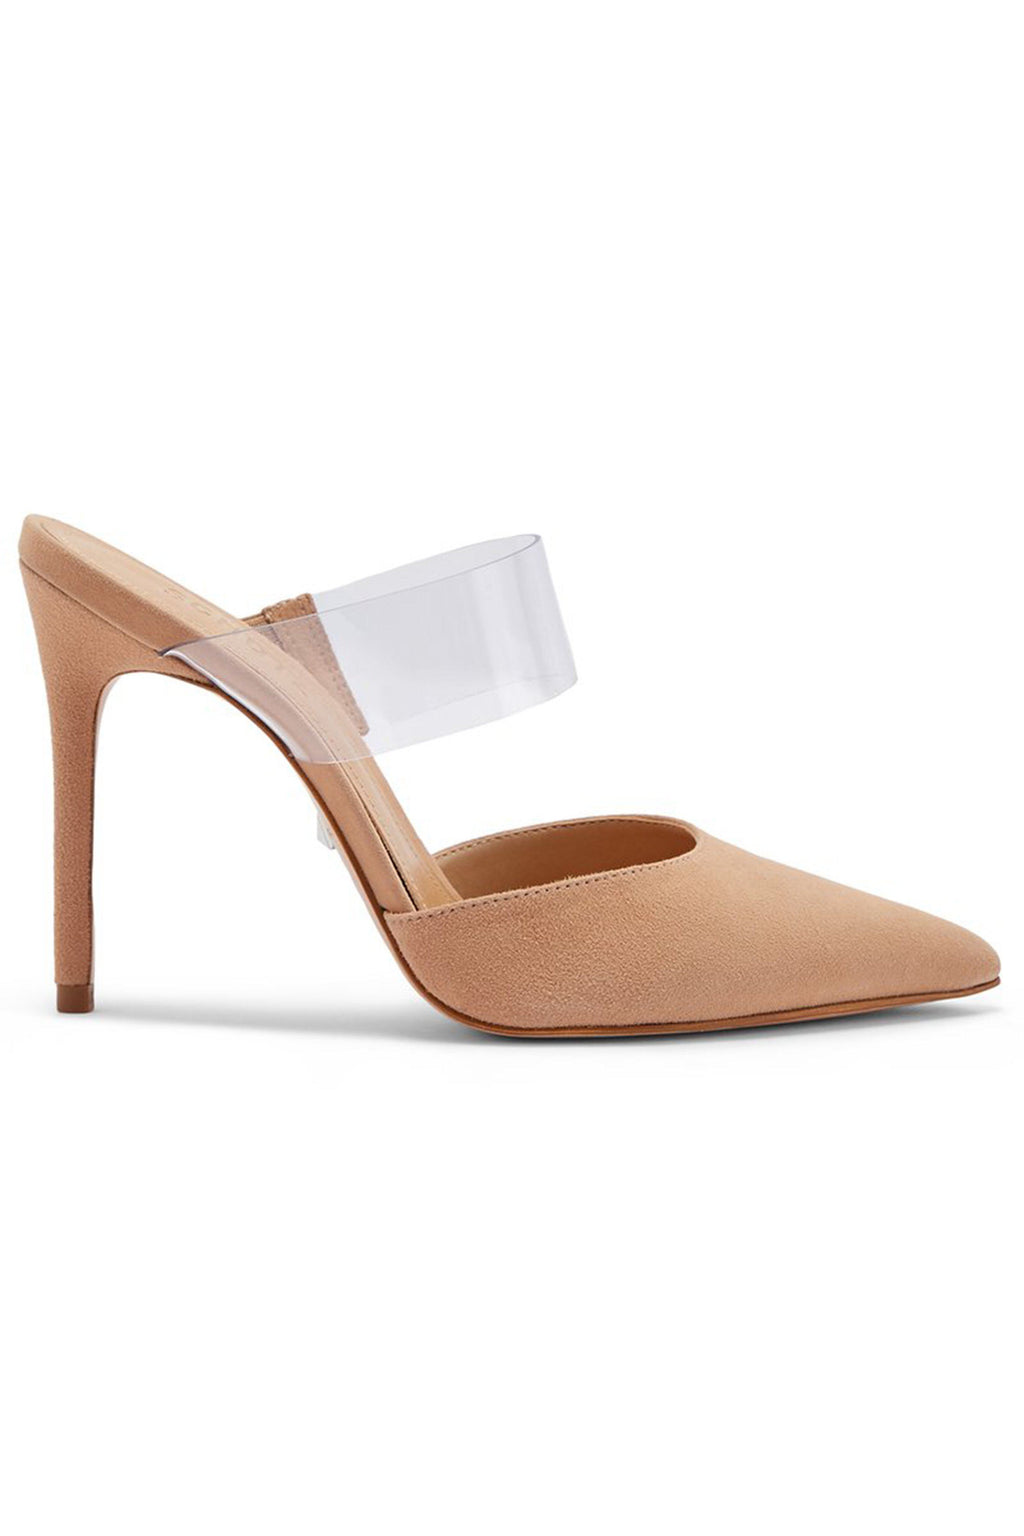 SCHUTZ | Sionne Heel - Honey Beige + Clear